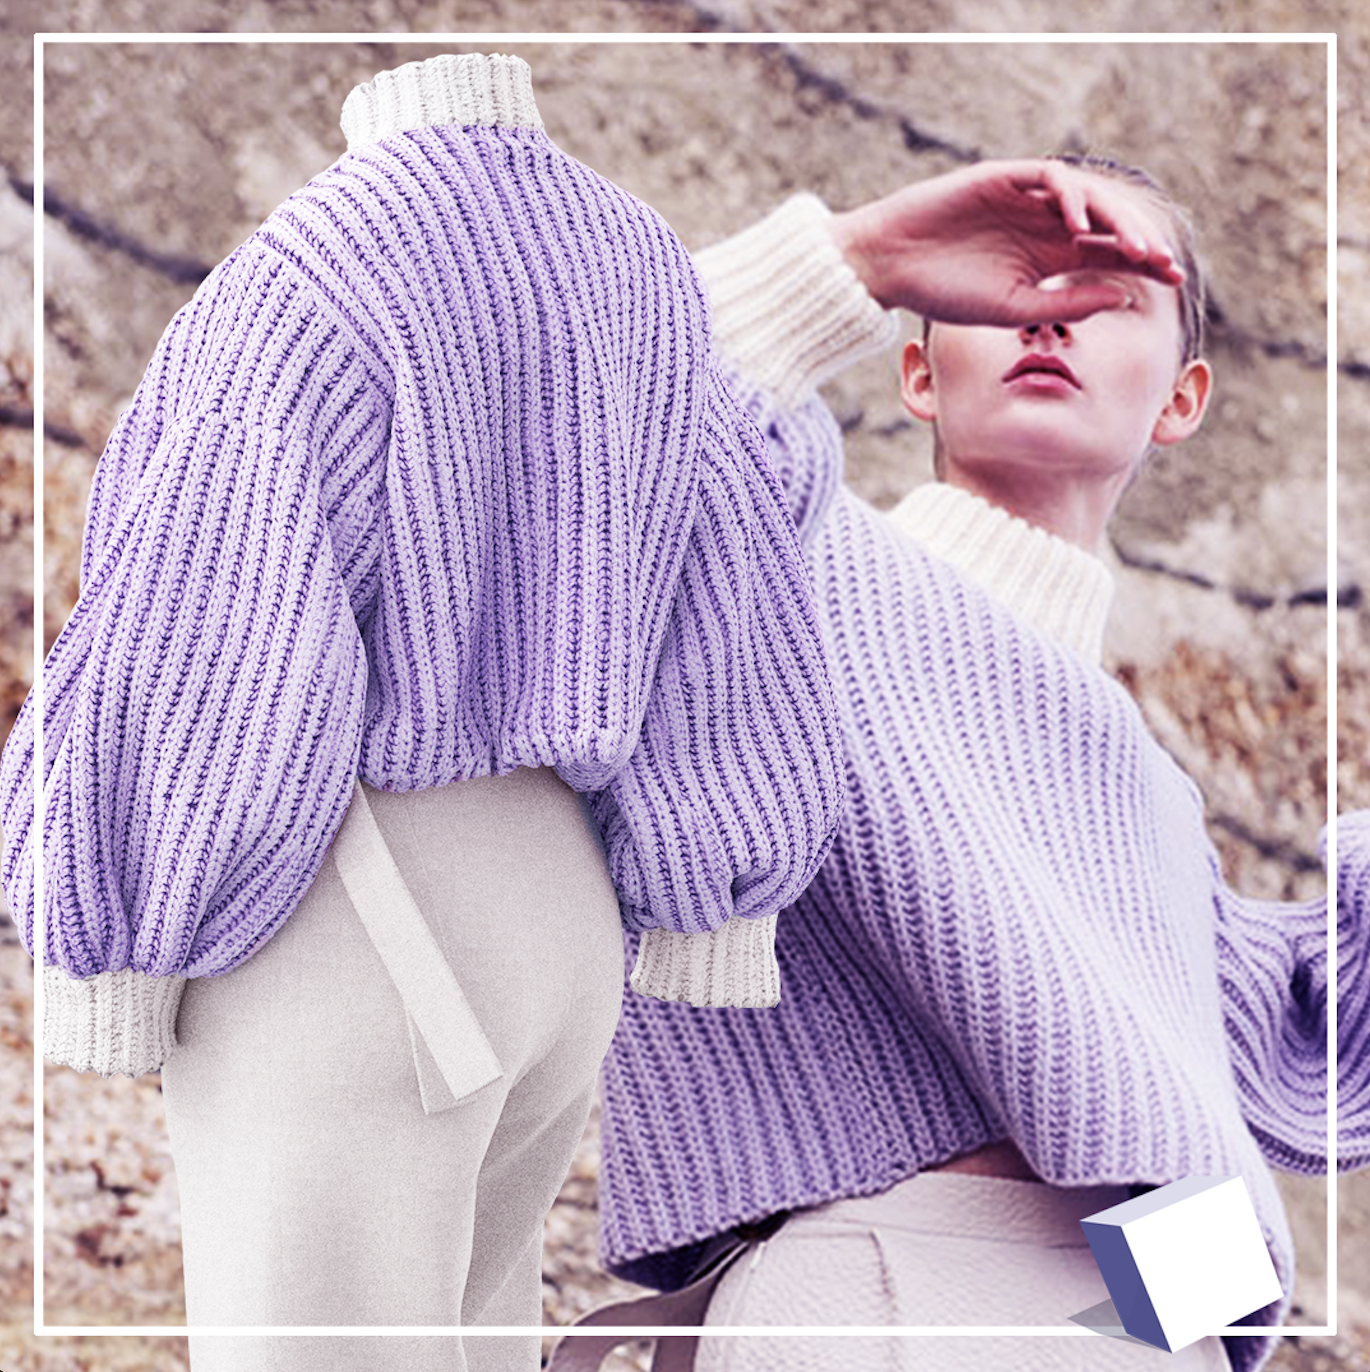 The image shows two versions of the same outfit. The first, in the background, is a photo of a white, delicately-featured model wearing a purple knit sweater with white edging, on top of a pair of smart white trousers. The second shows a digital ender of the same outfit.